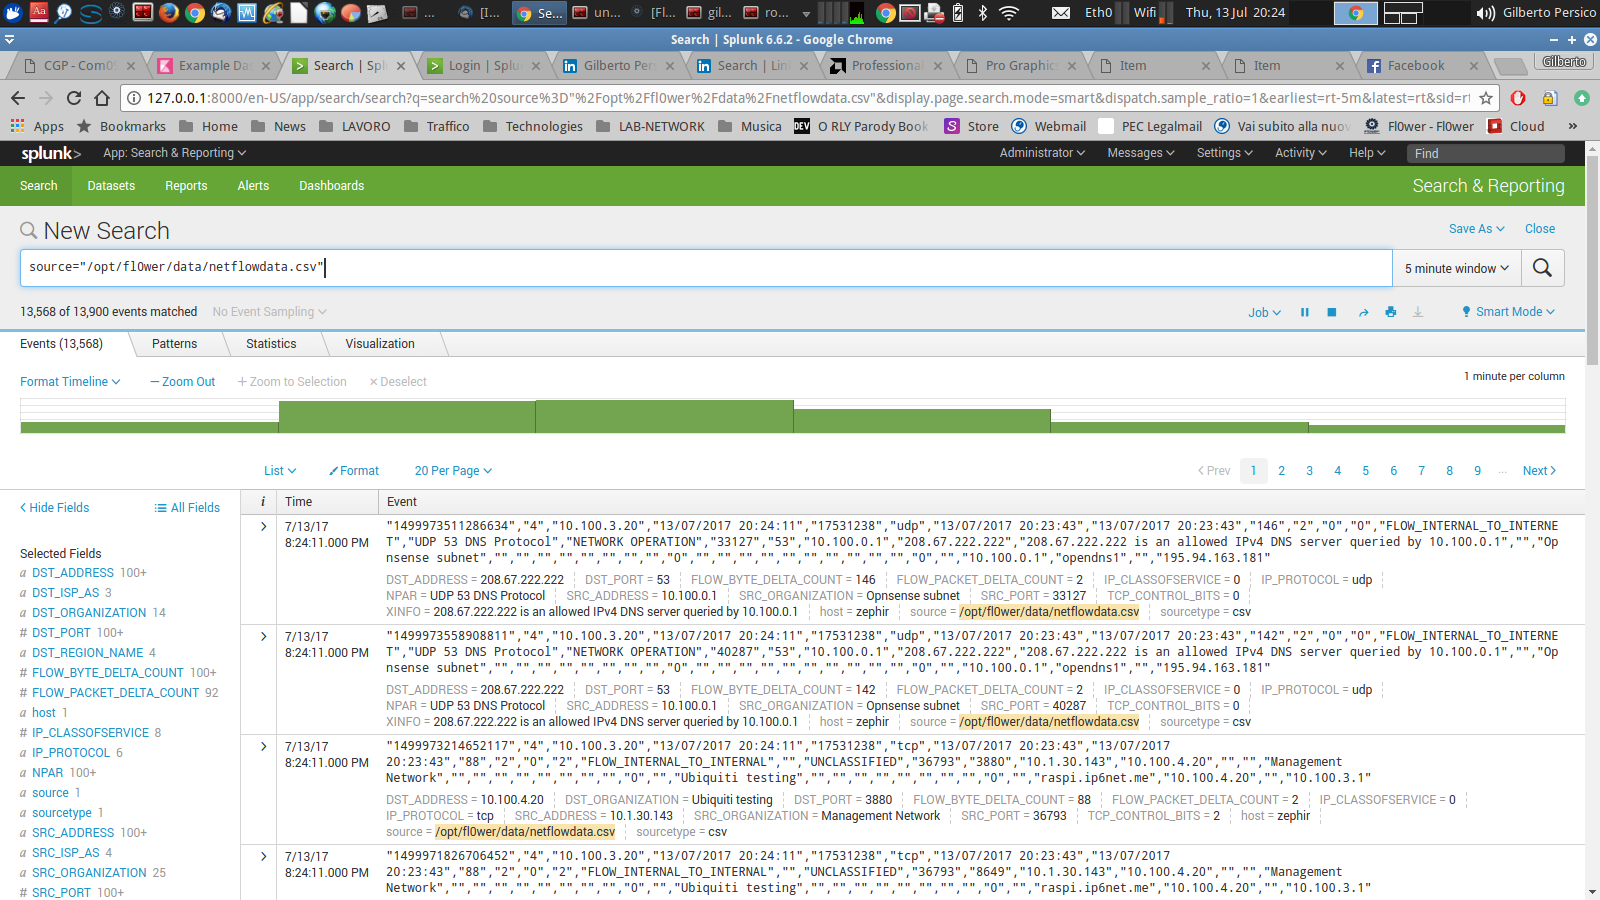 Splunk Search